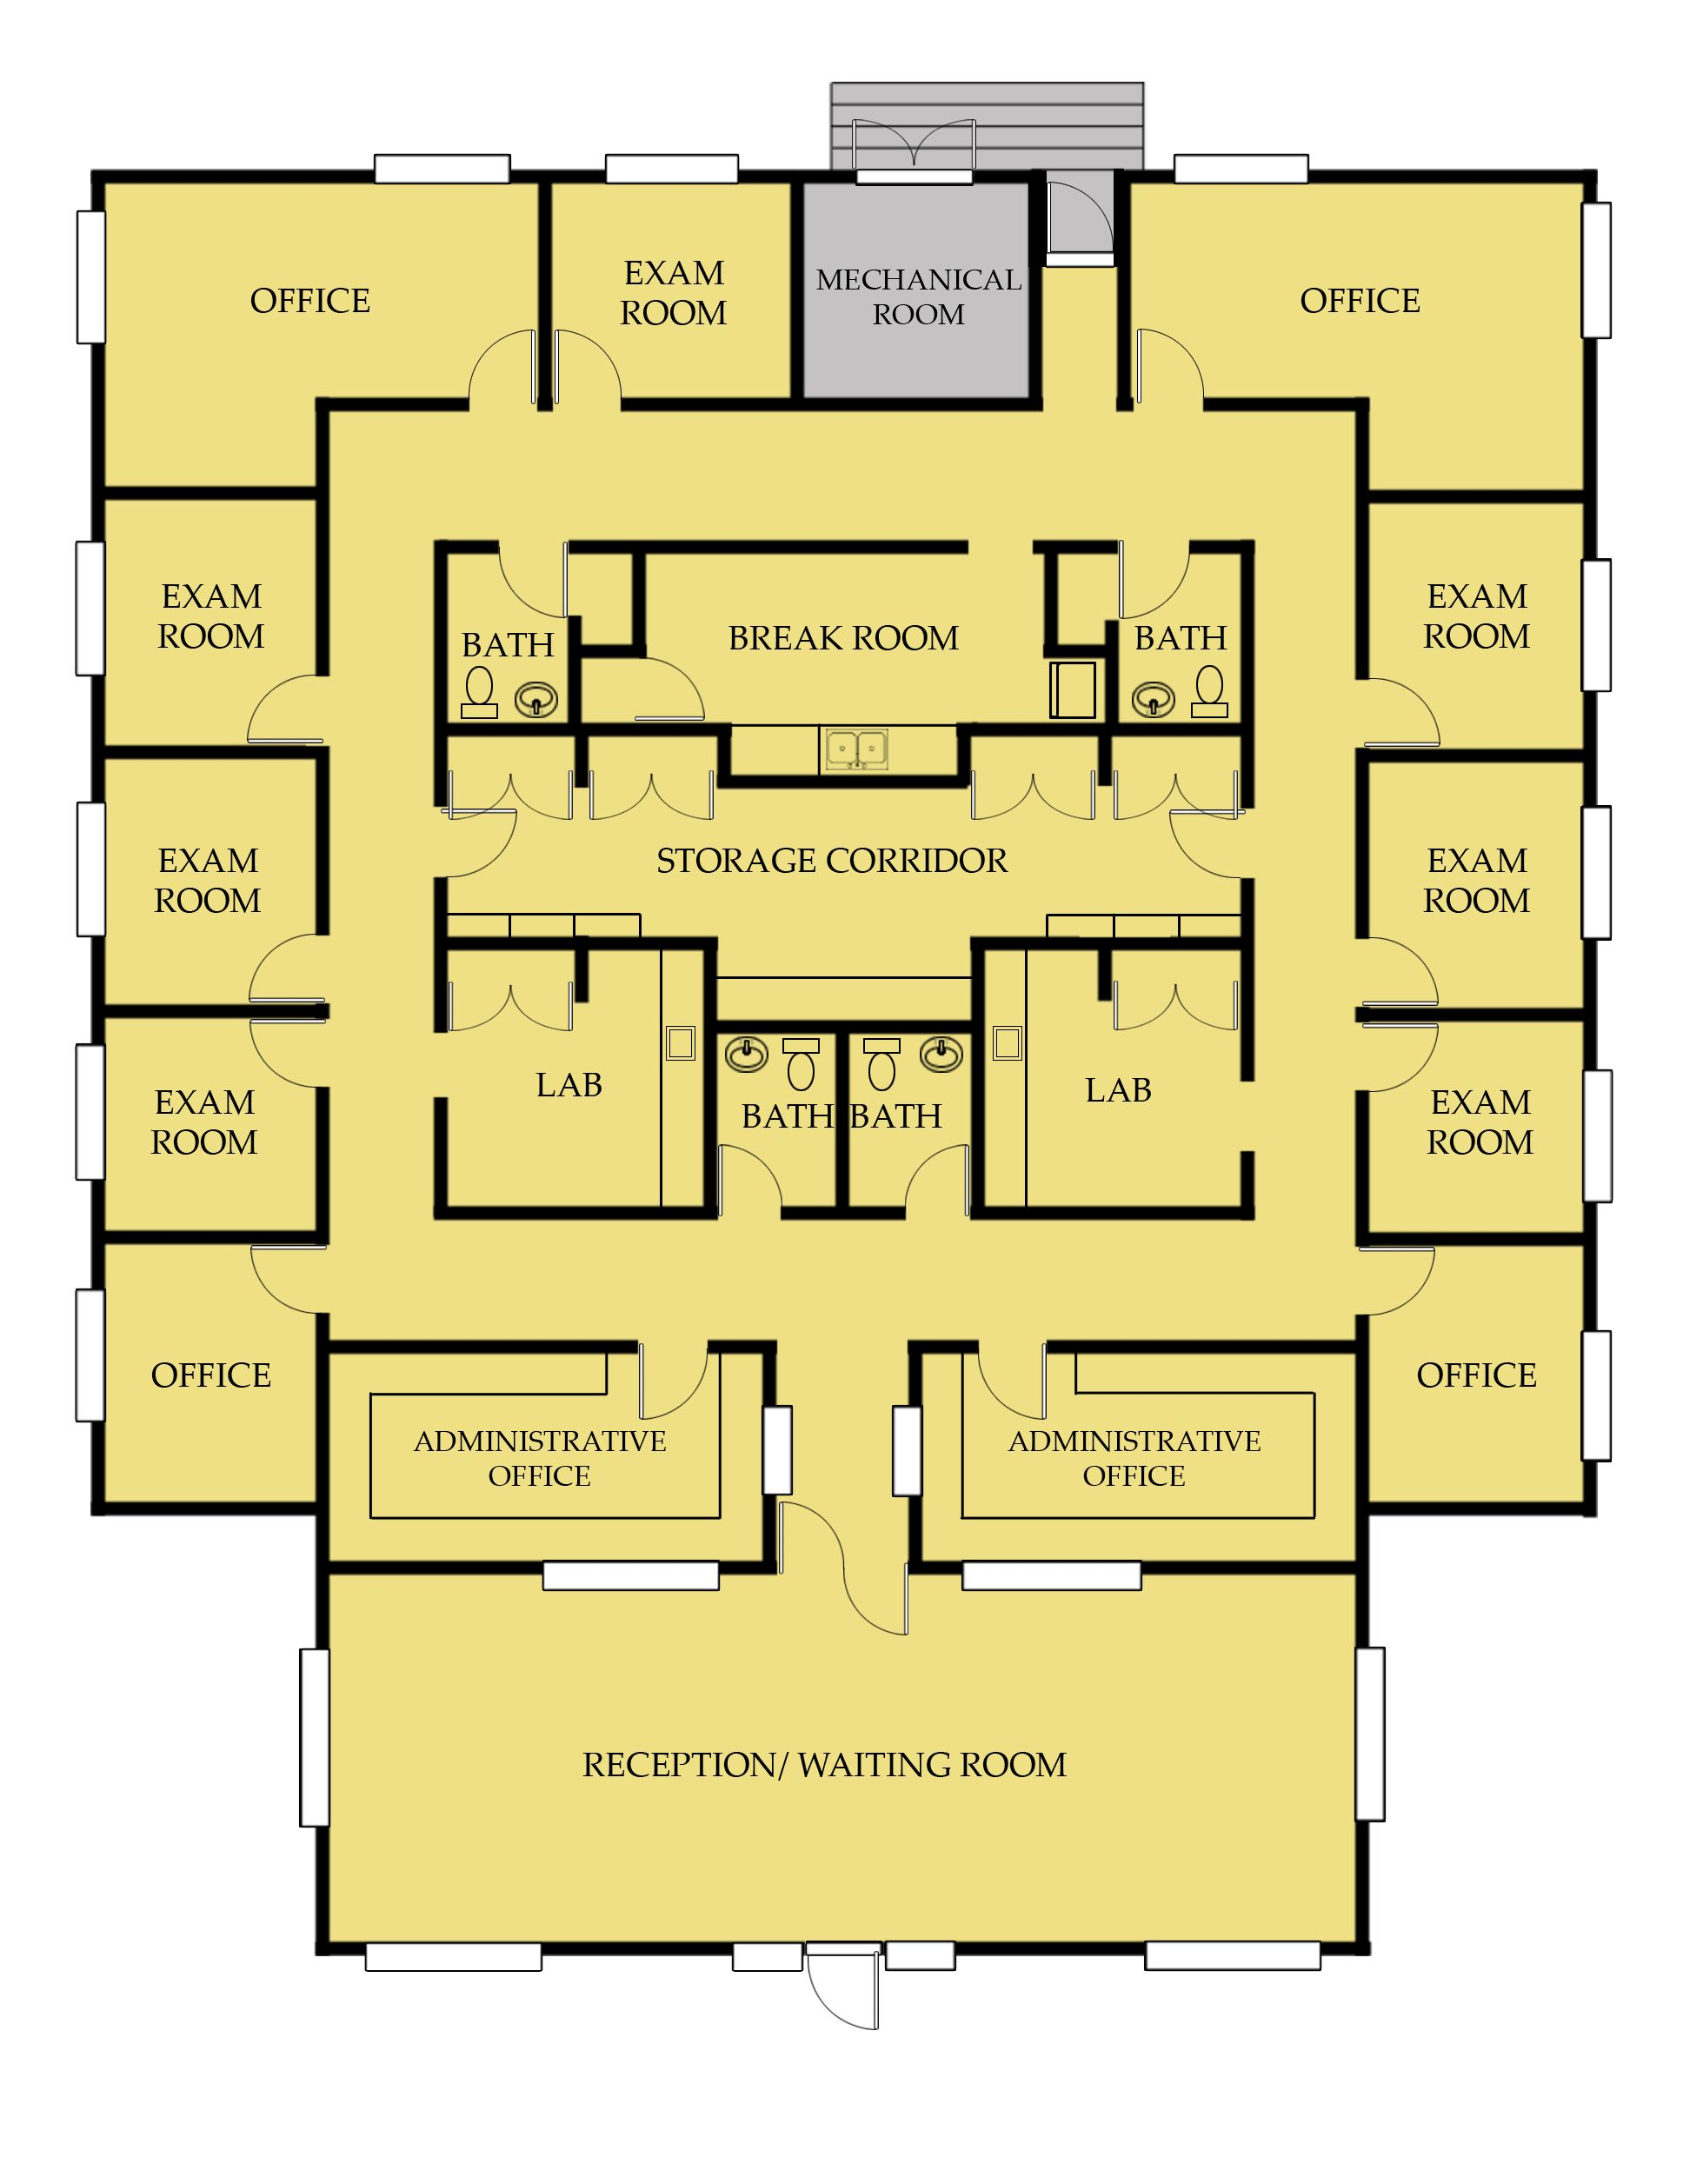 Medical office building floor plans medical pinterest for Building planner